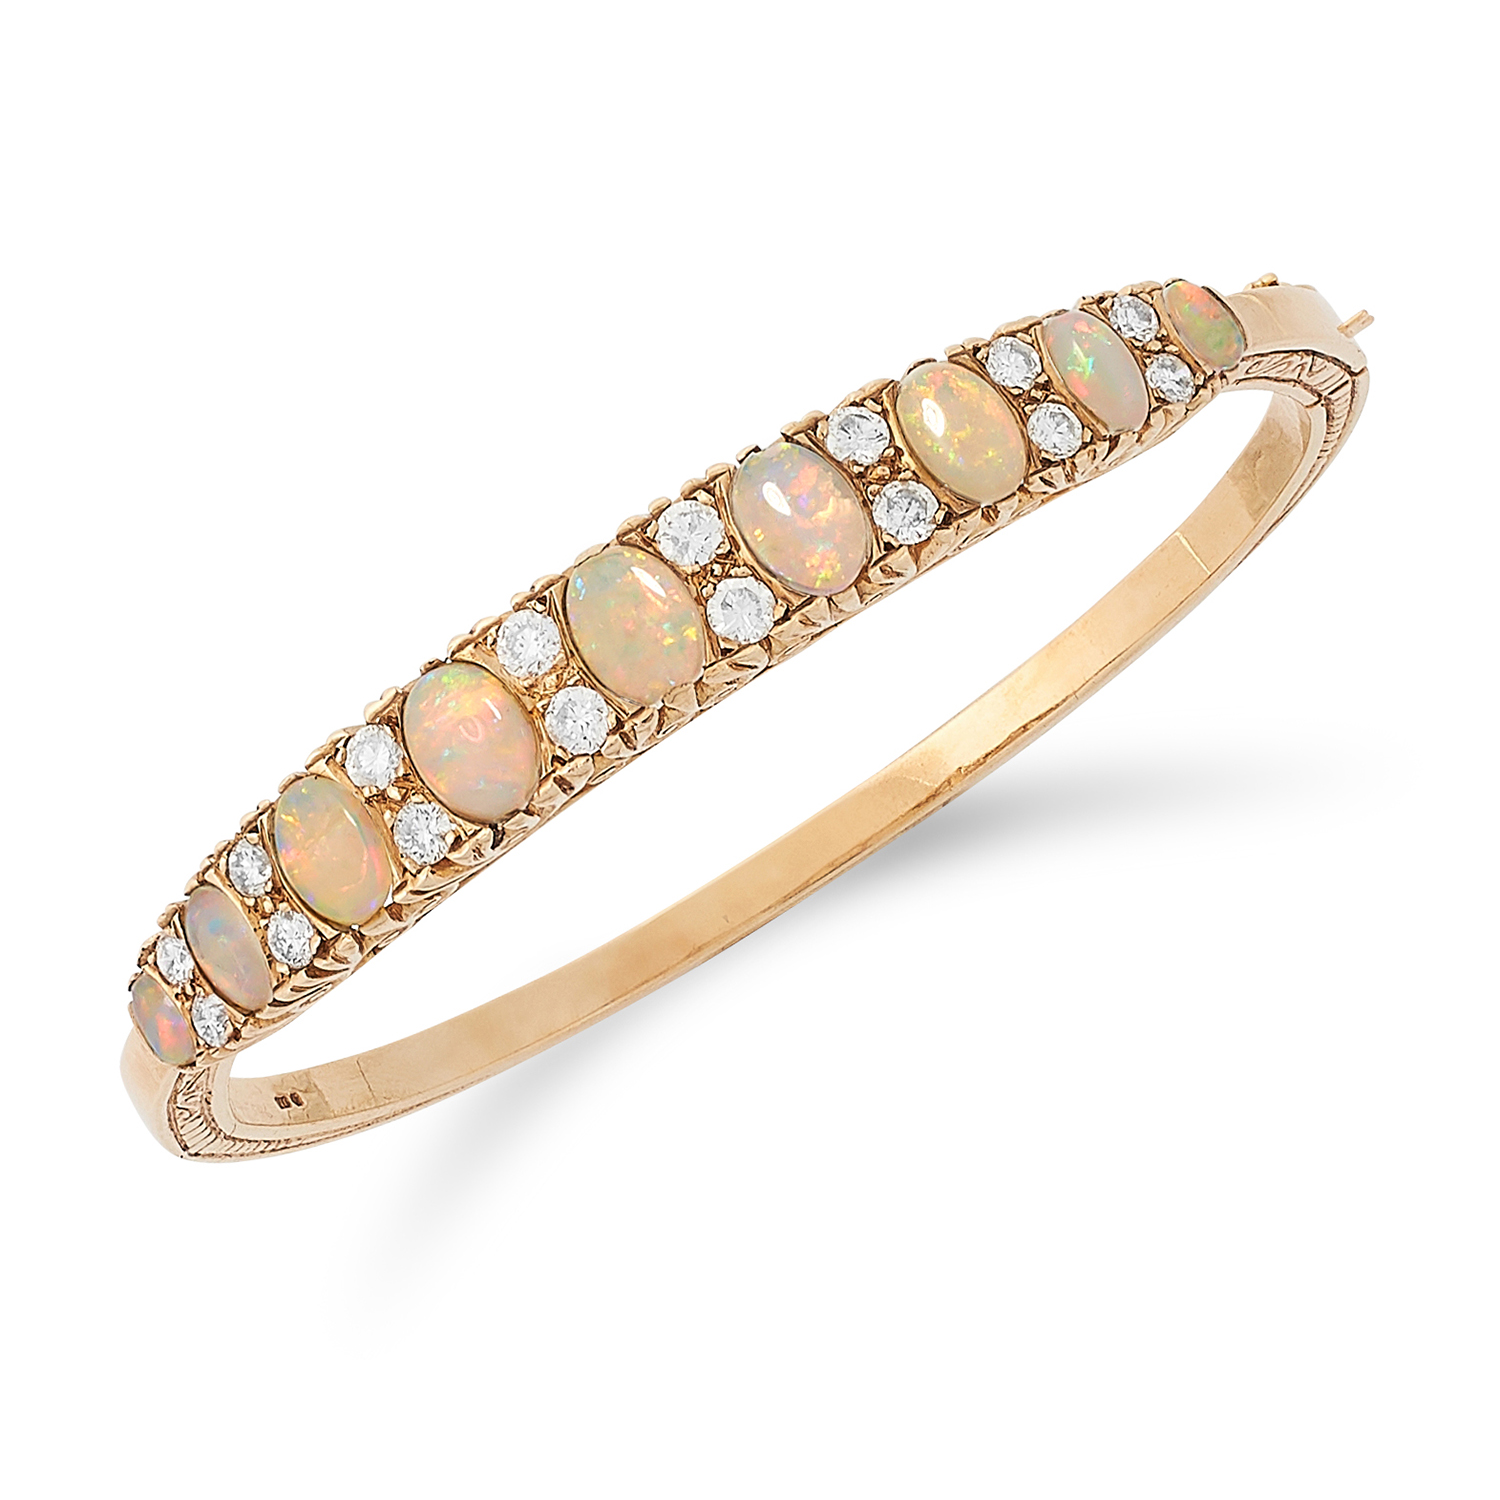 ANTIQUE DIAMOND AND OPAL BANGLE set with alternating cabochon opals and round cut diamonds, 6cm